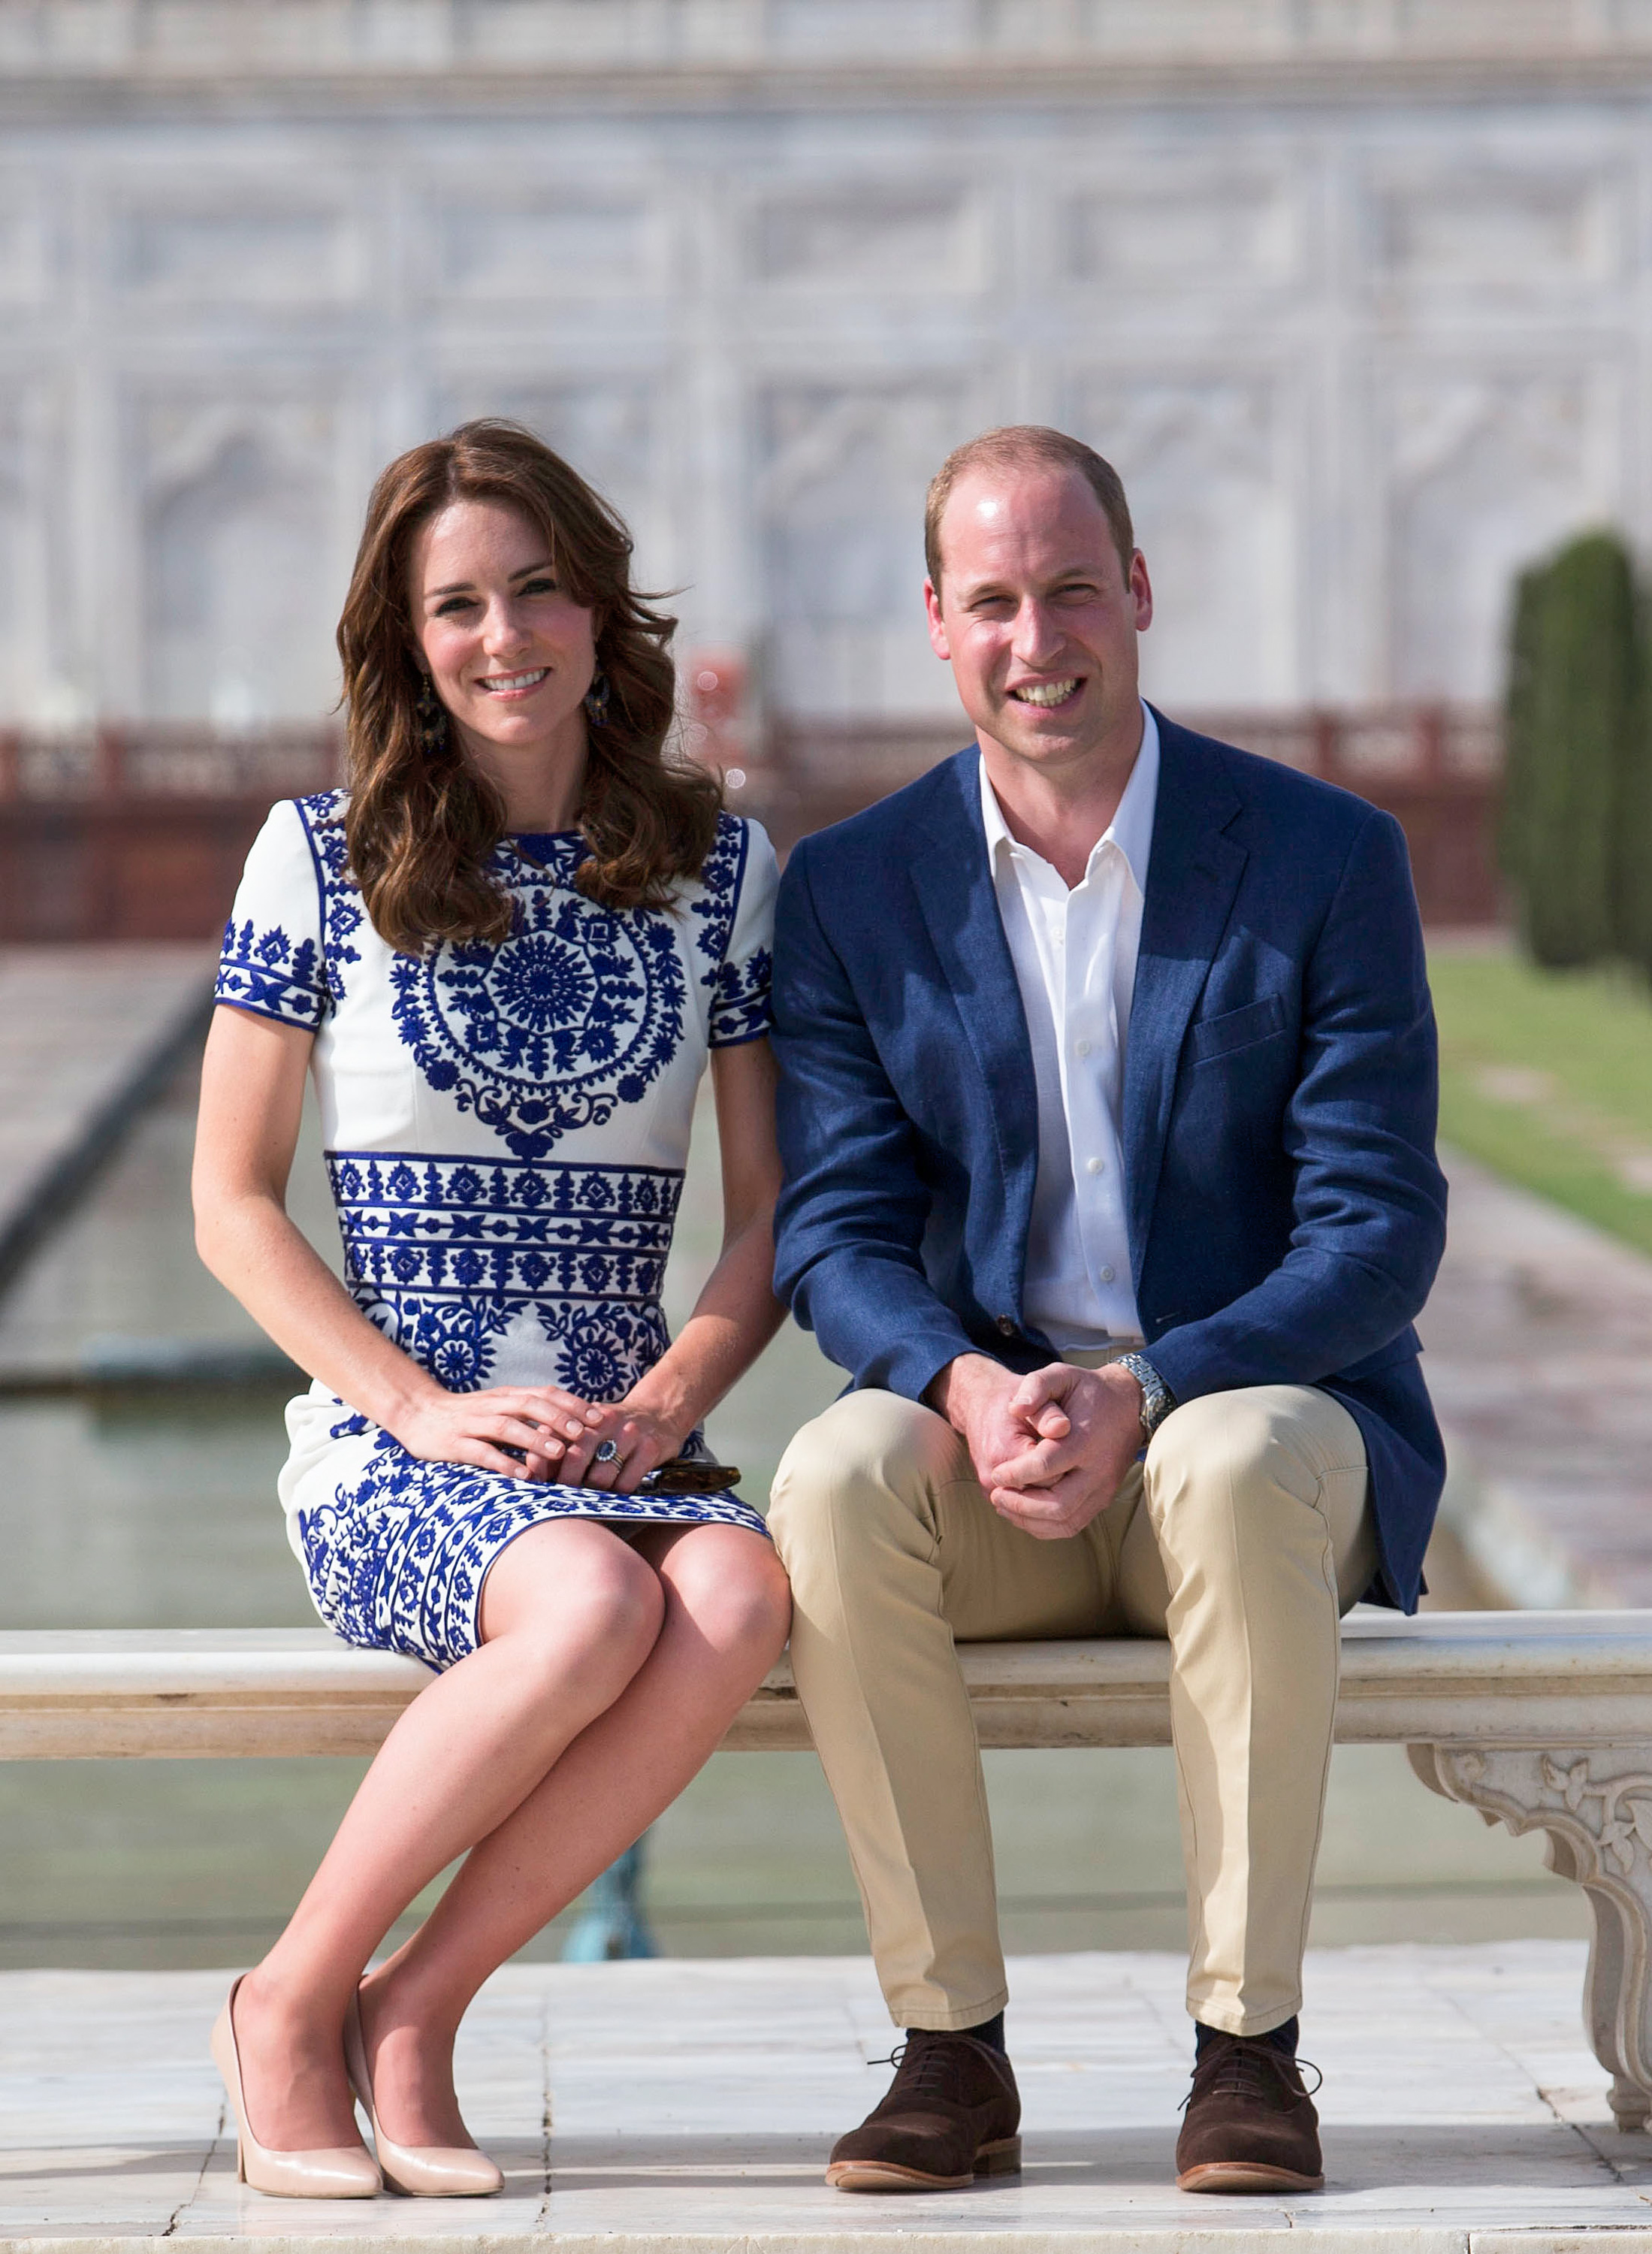 Prince William busts on Duchess Kate's cooking